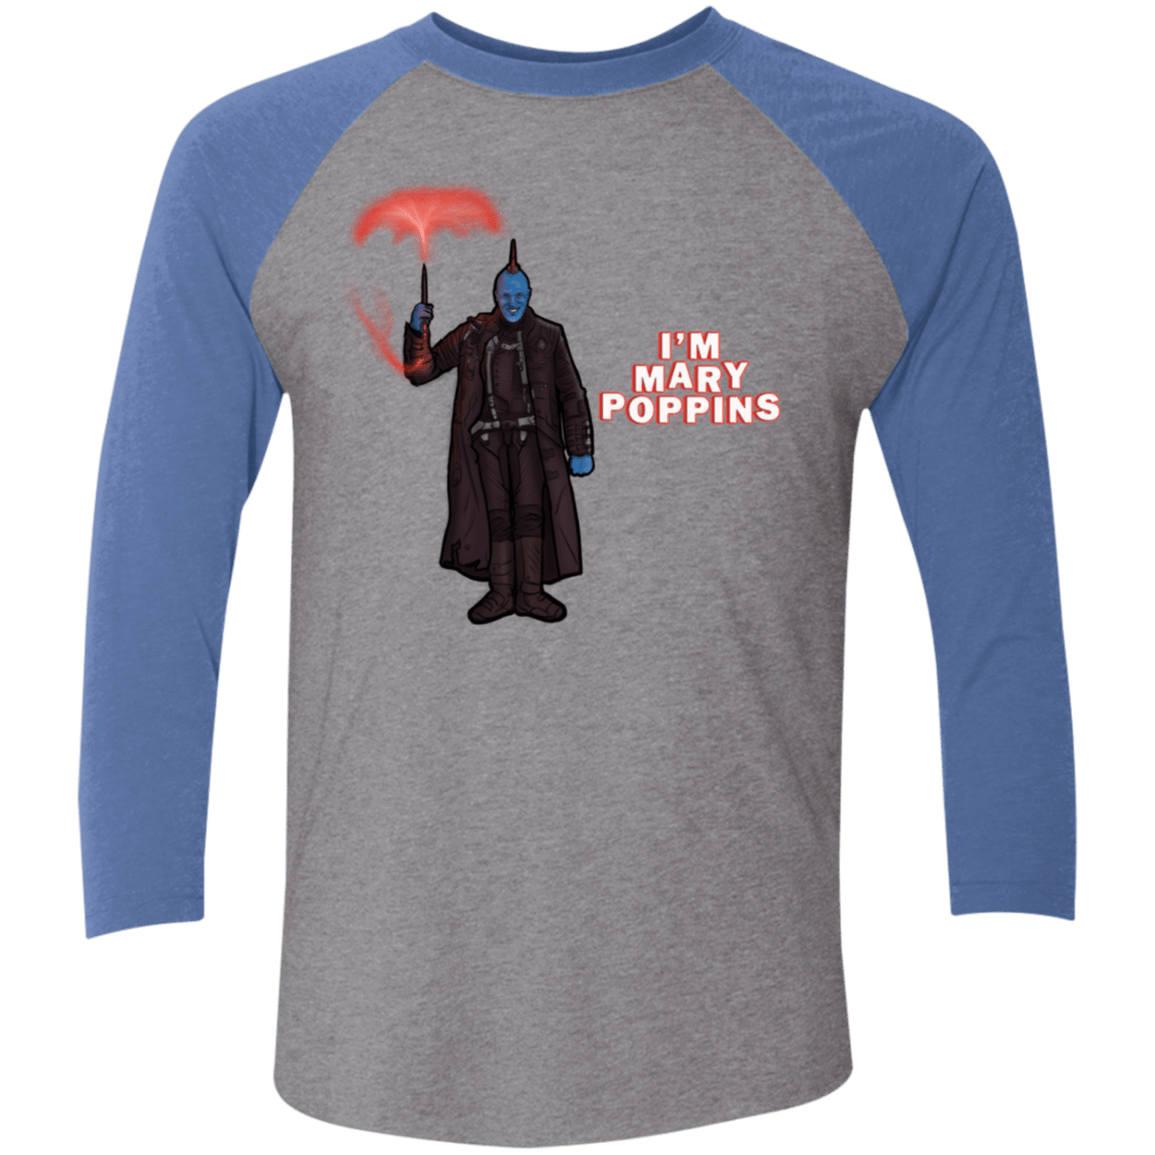 T-Shirts Premium Heather/Vintage Royal / X-Small Yondu Poppins Men's Triblend 3/4 Sleeve